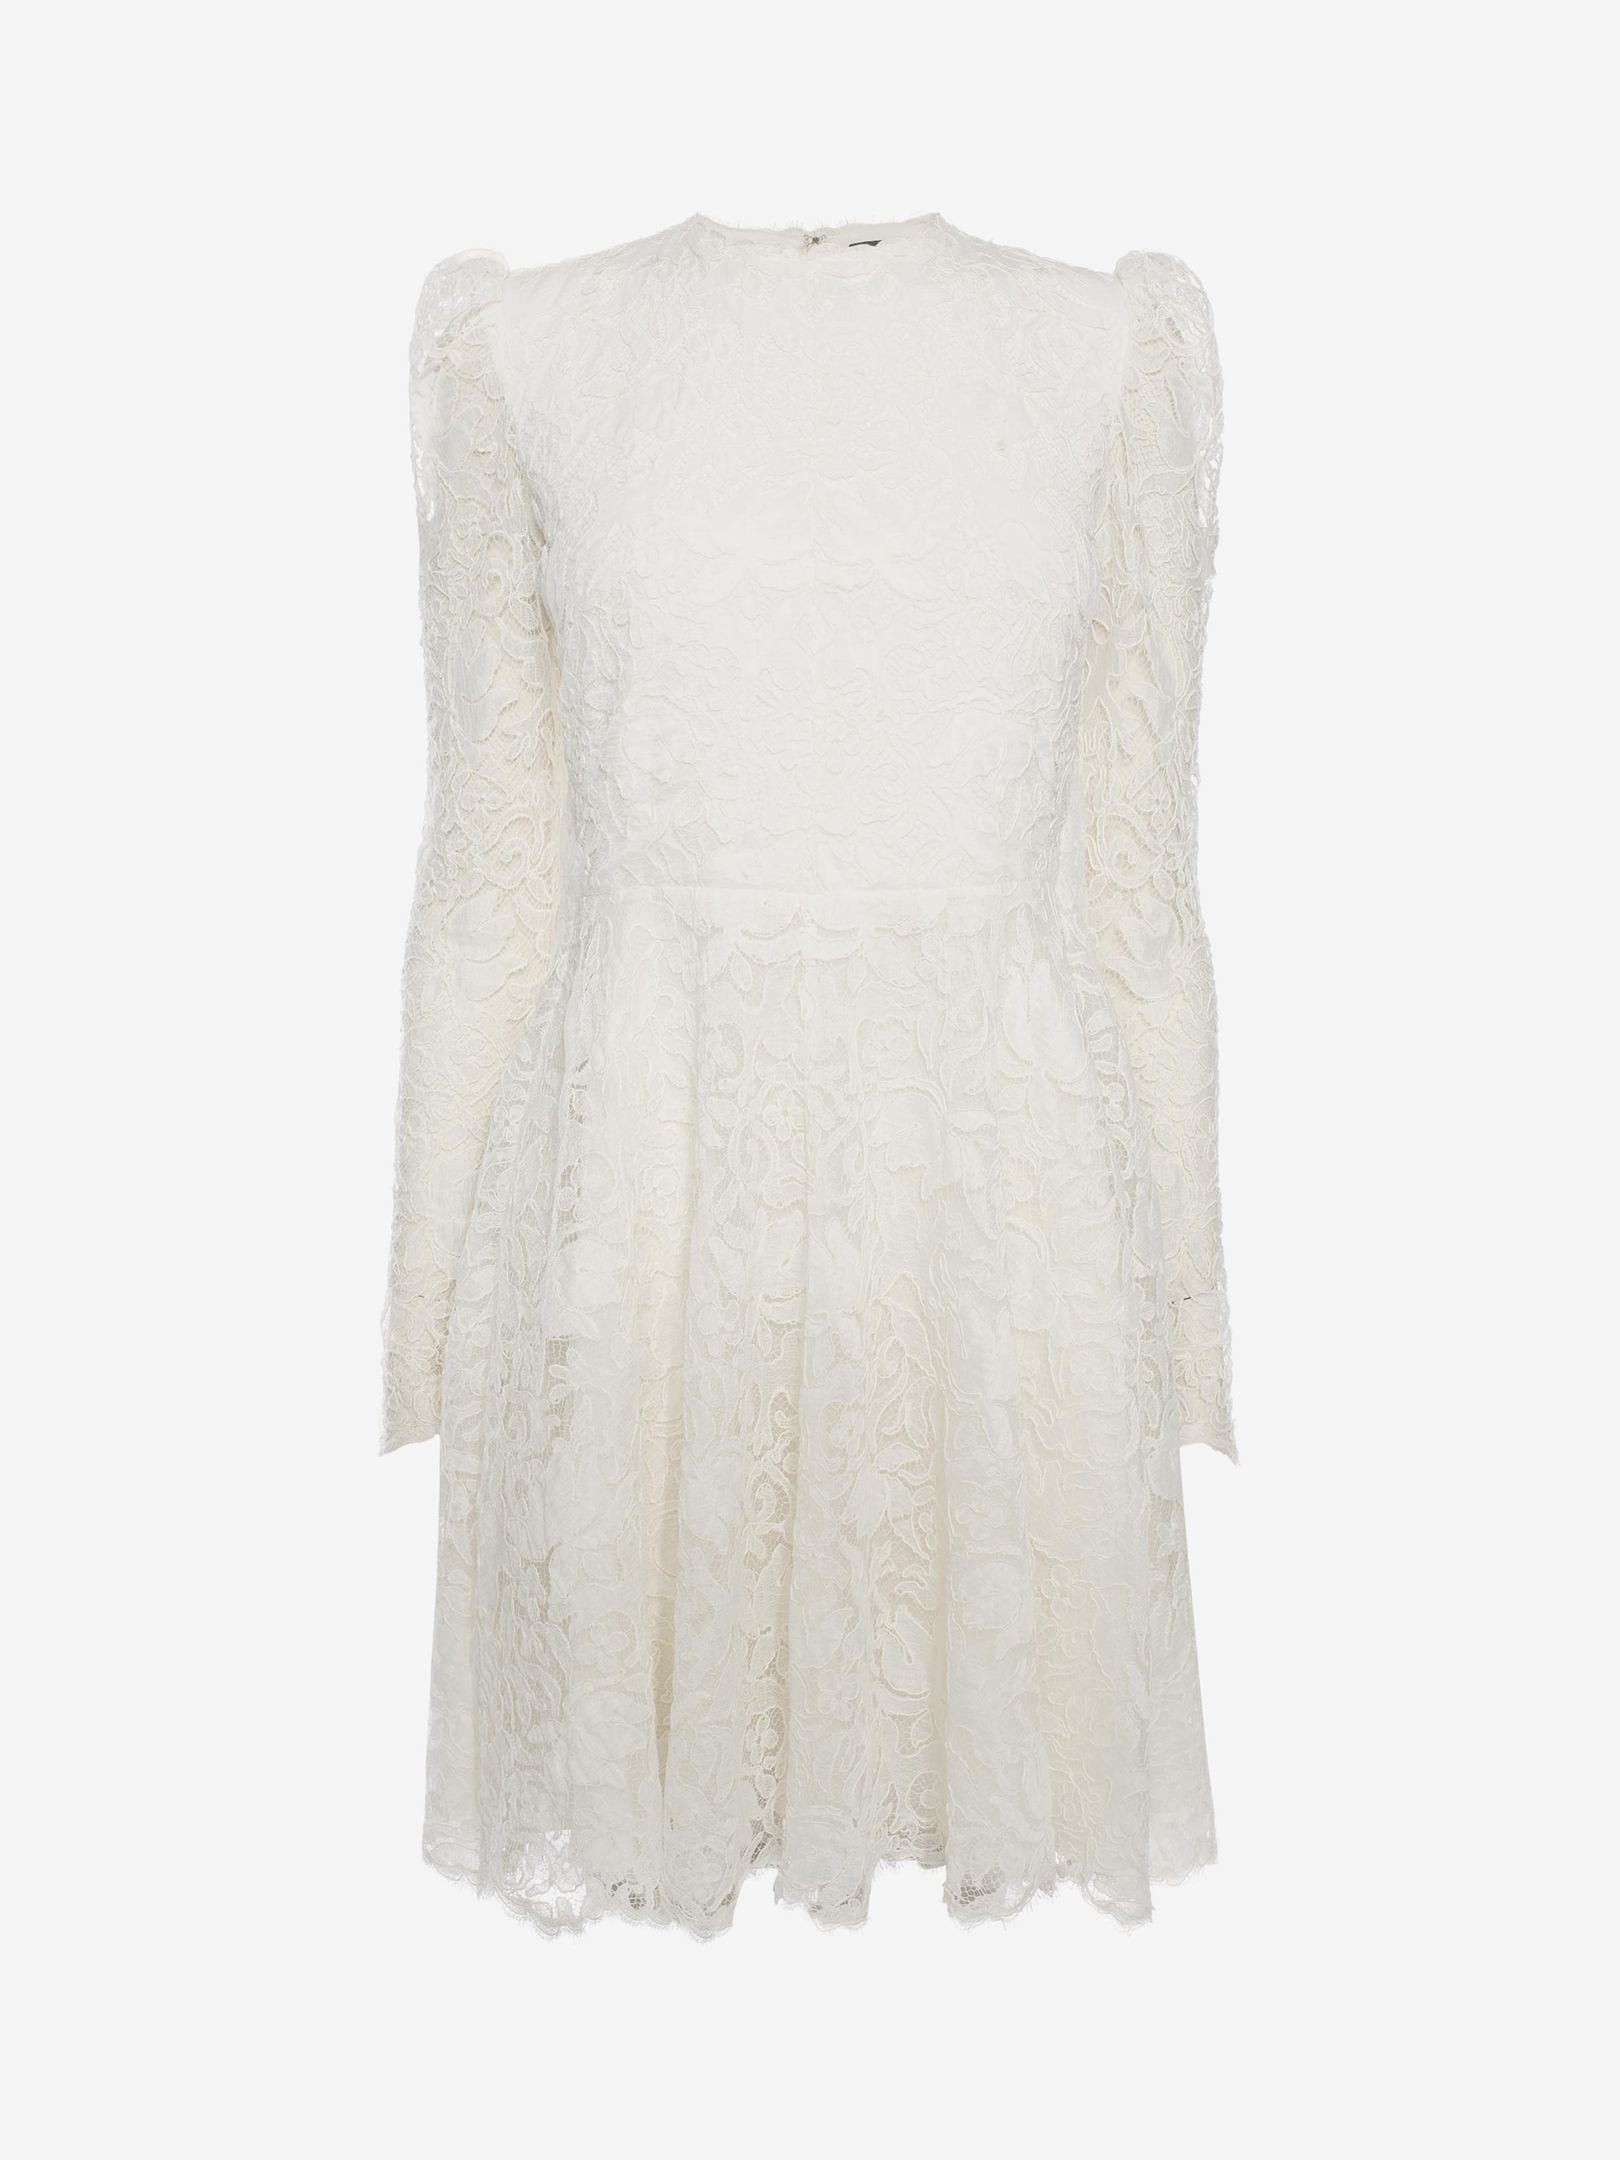 ALEXANDER MCQUEEN Cape Back Mini Lace Ivory Dress